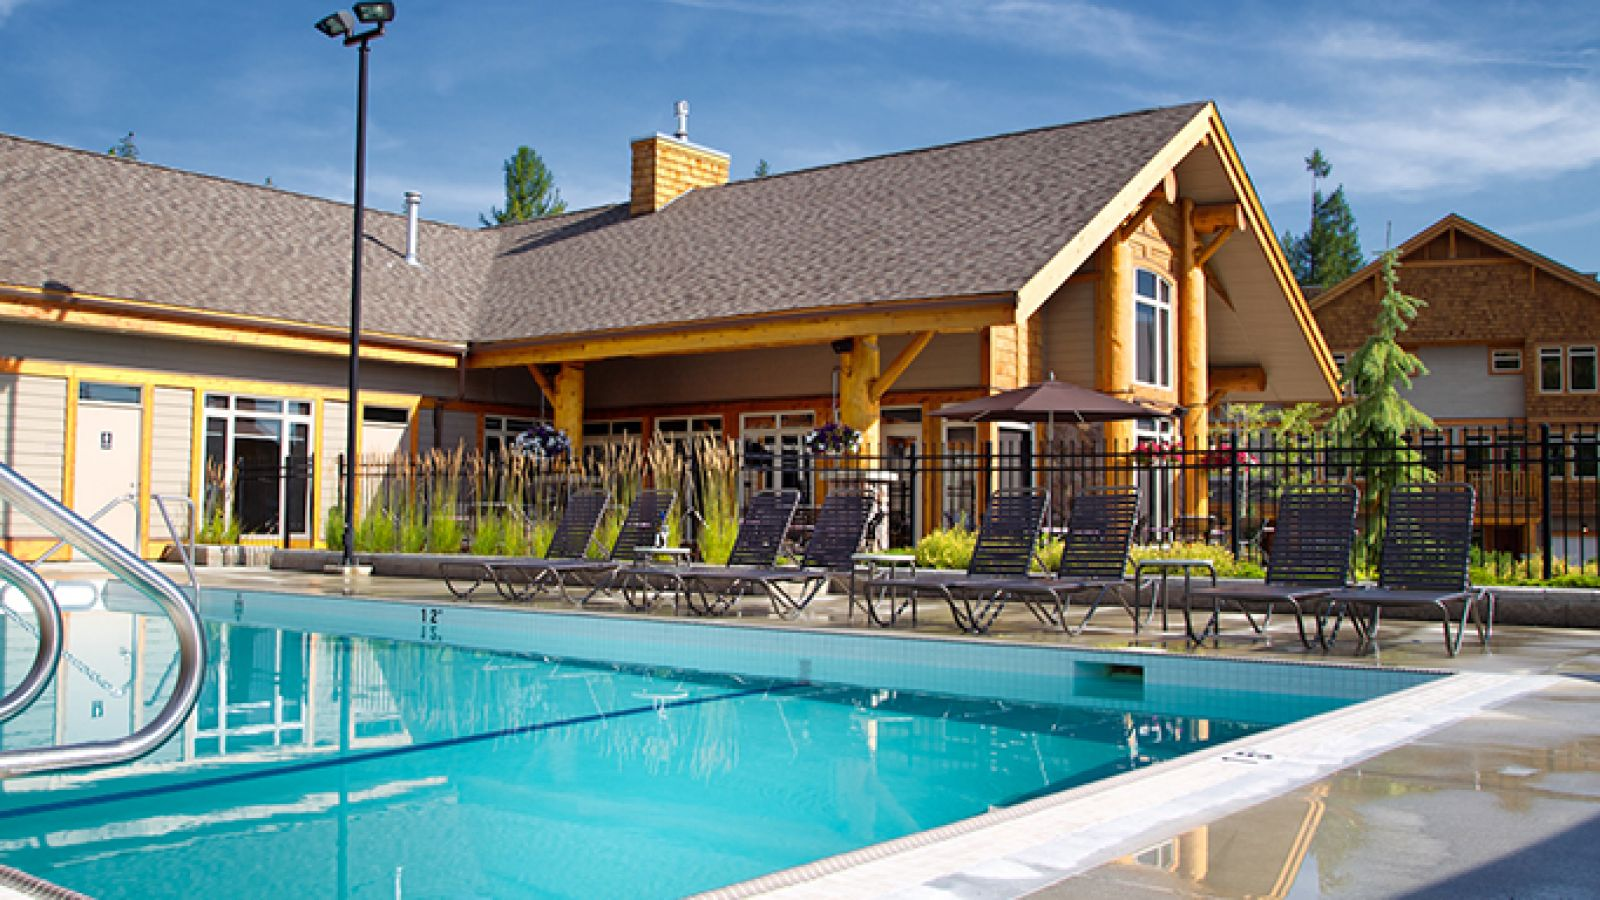 Enjoy the year-round heated outdoor pool.